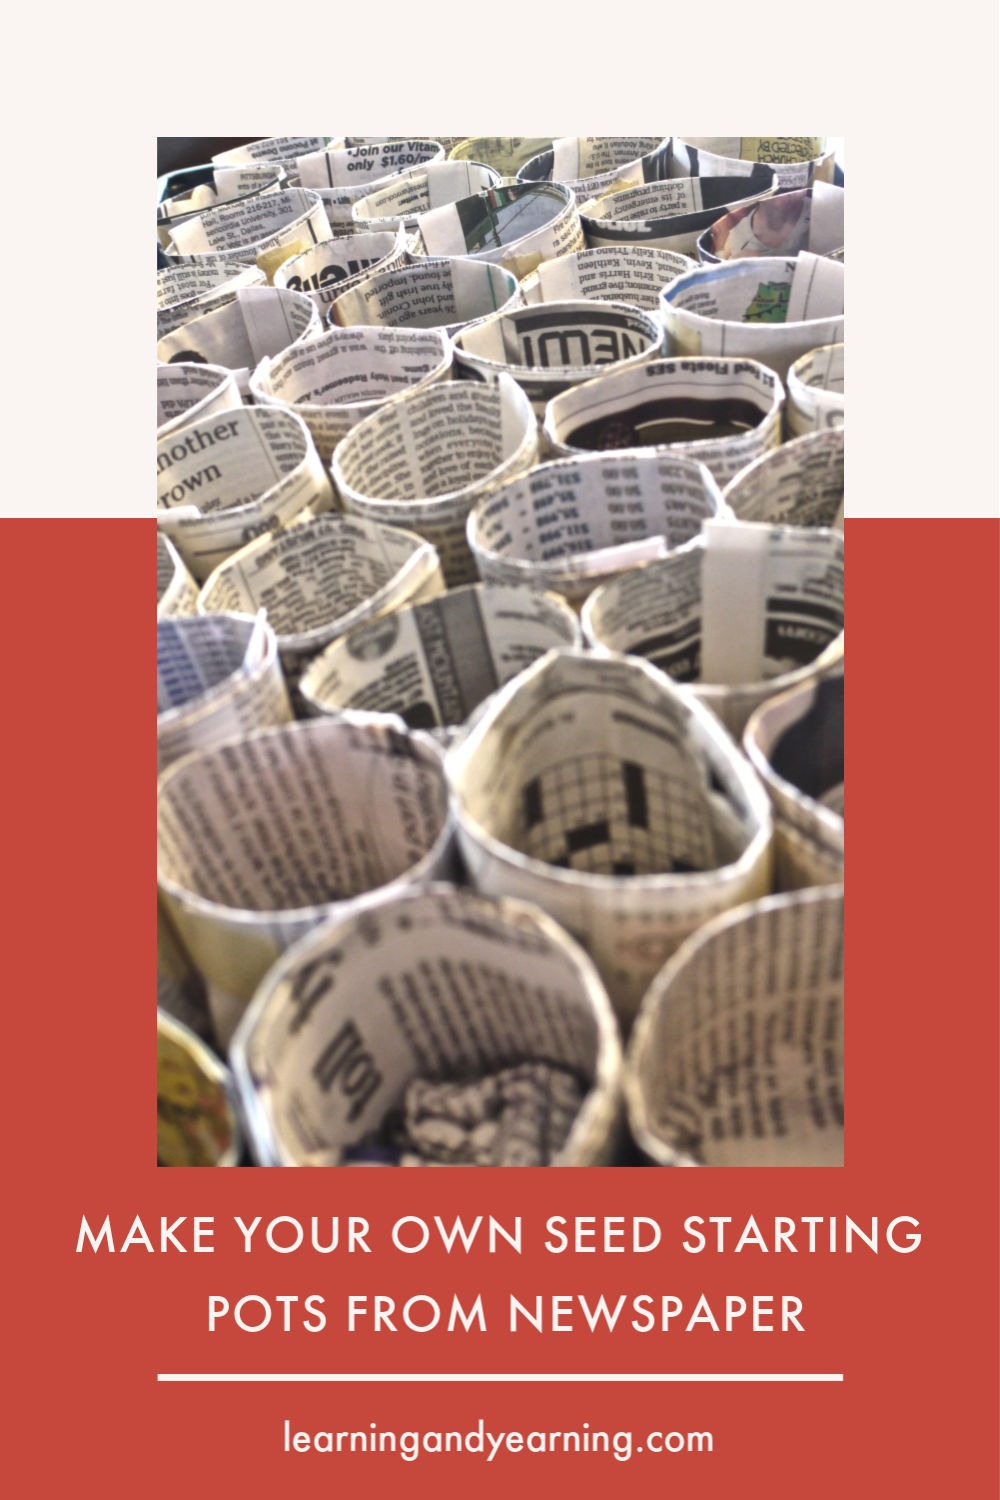 Make your own seed starting pots from newspaper.